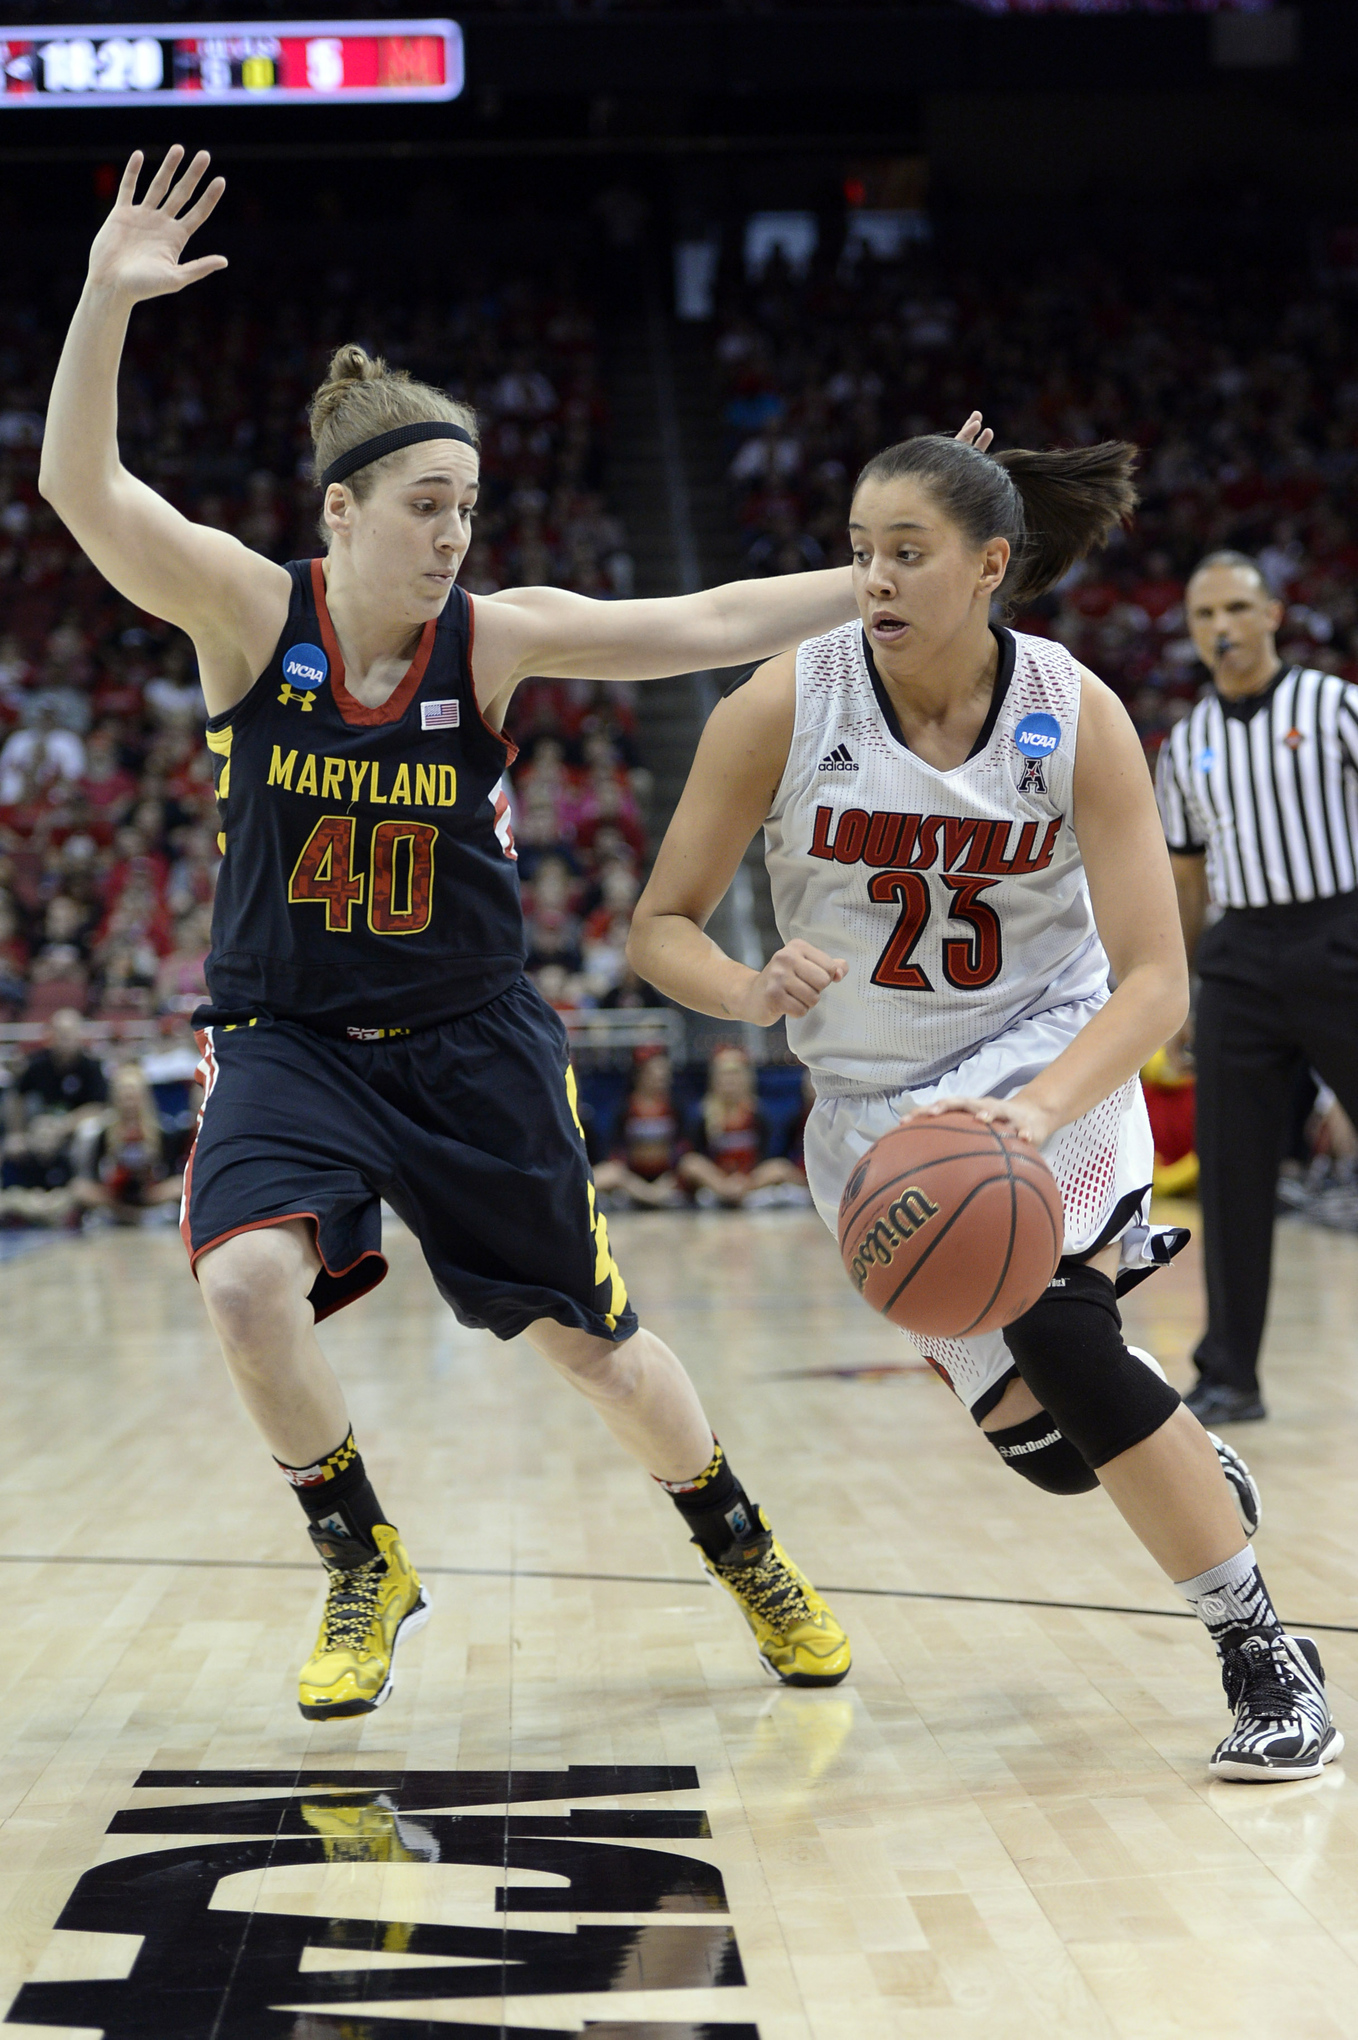 Shoni Schimmel's game against Maryland might not have ended well for Louisville, but it was a pretty good showcase of her talent.